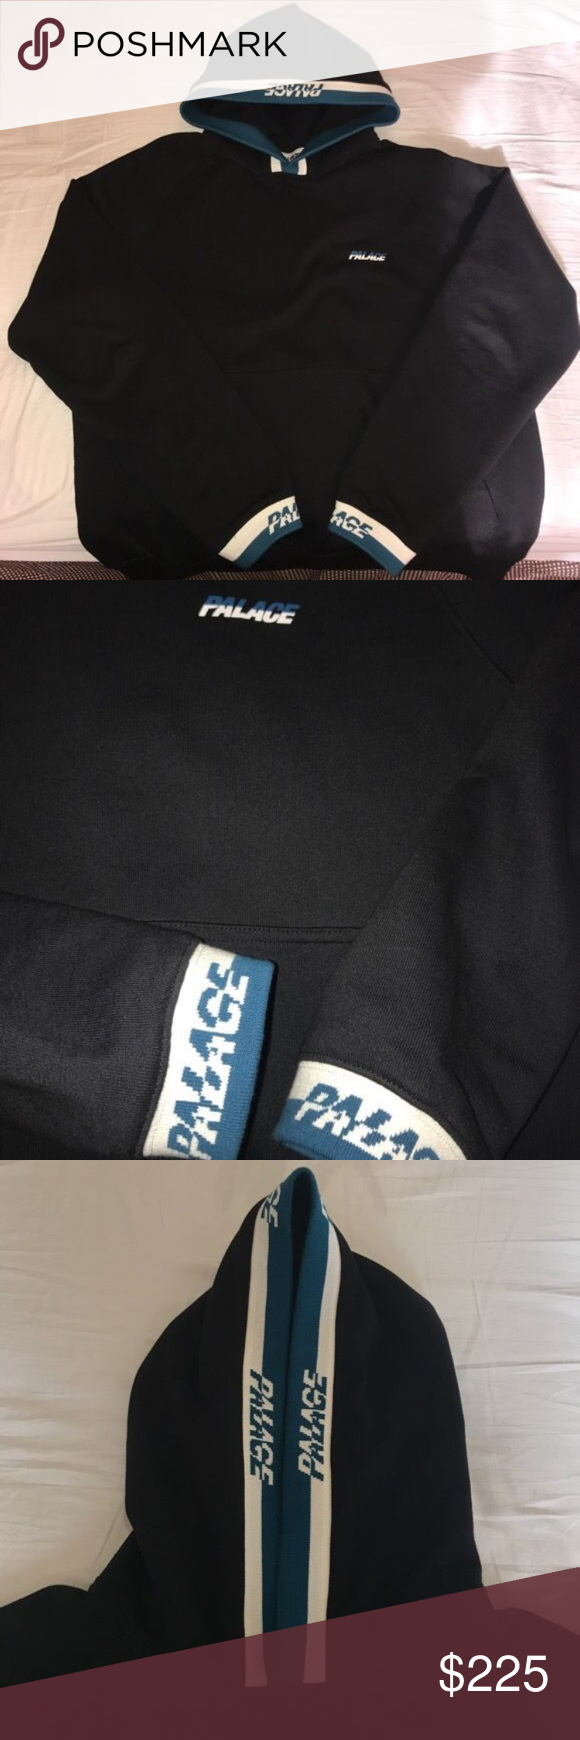 PALACE SPLITTER HOODIE BLACK/BLUE SIZE MEDIUM - worn once not my style - brand new essentially - willing to trade for palace supreme bape gucci ftp vlone nike adidas palace Shirts Sweatshirts & Hoodies